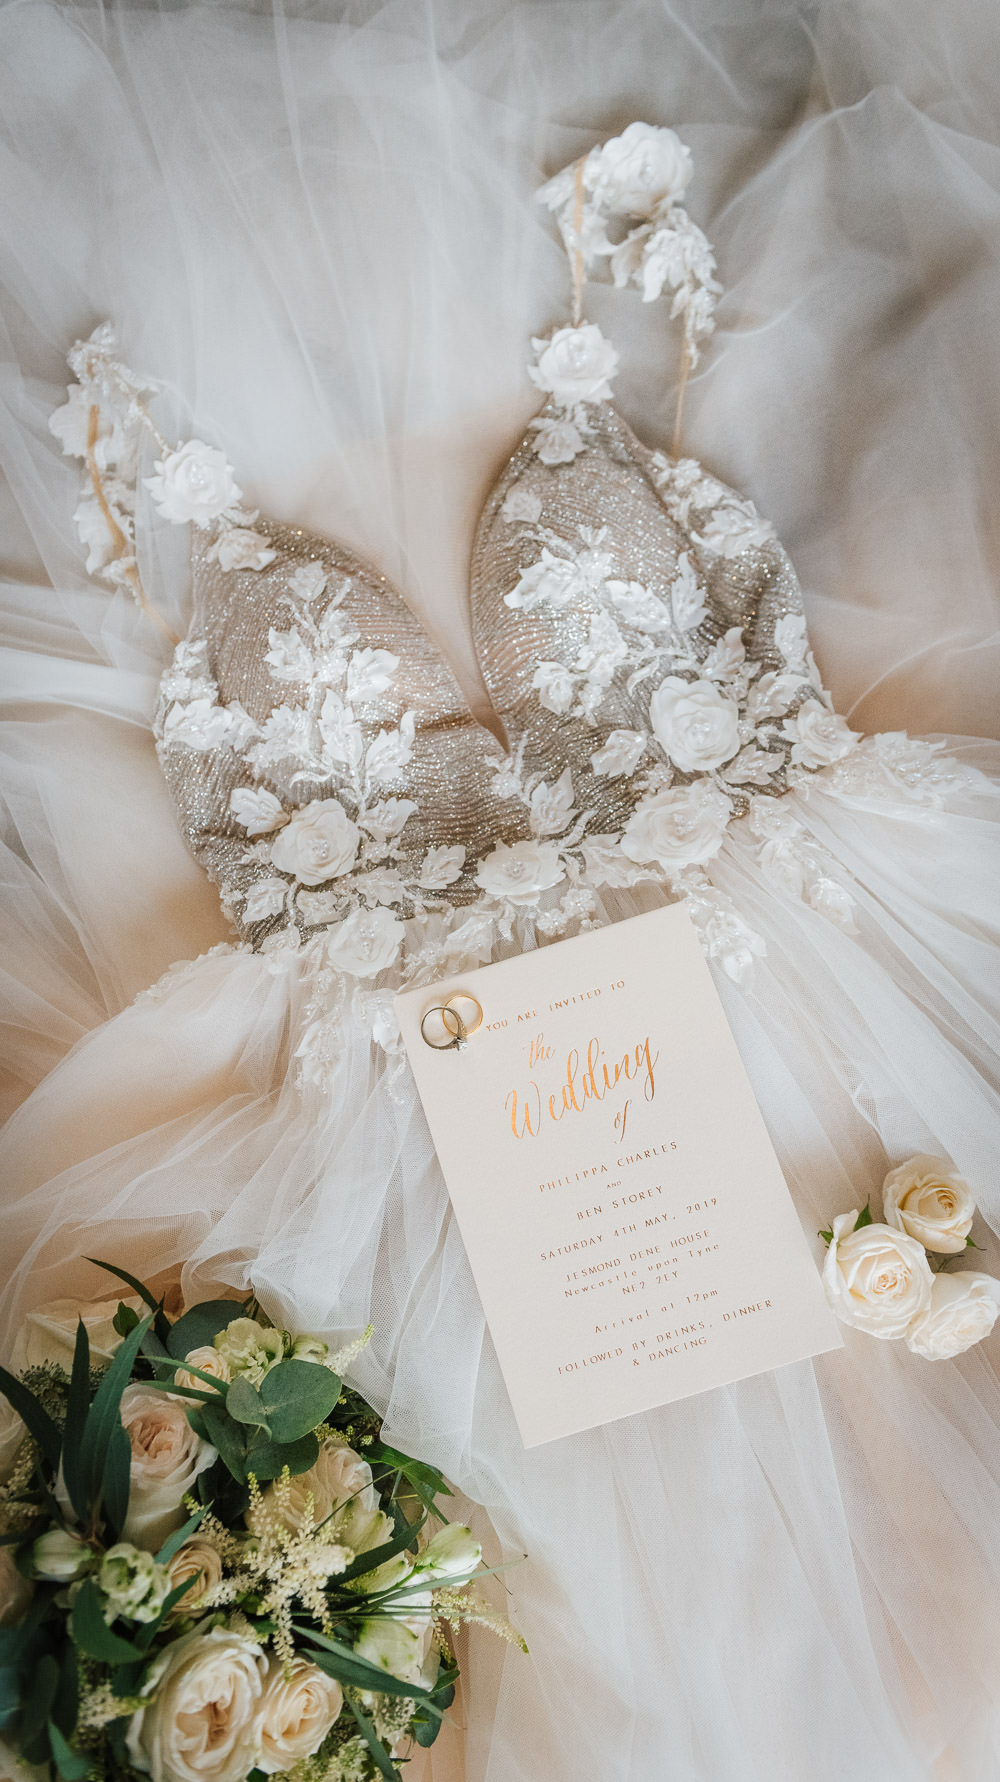 Dress Gown Bride Bridal Straps Train Lace Tulle Cherry Blossom Wedding Ideas Sugarbird Photography